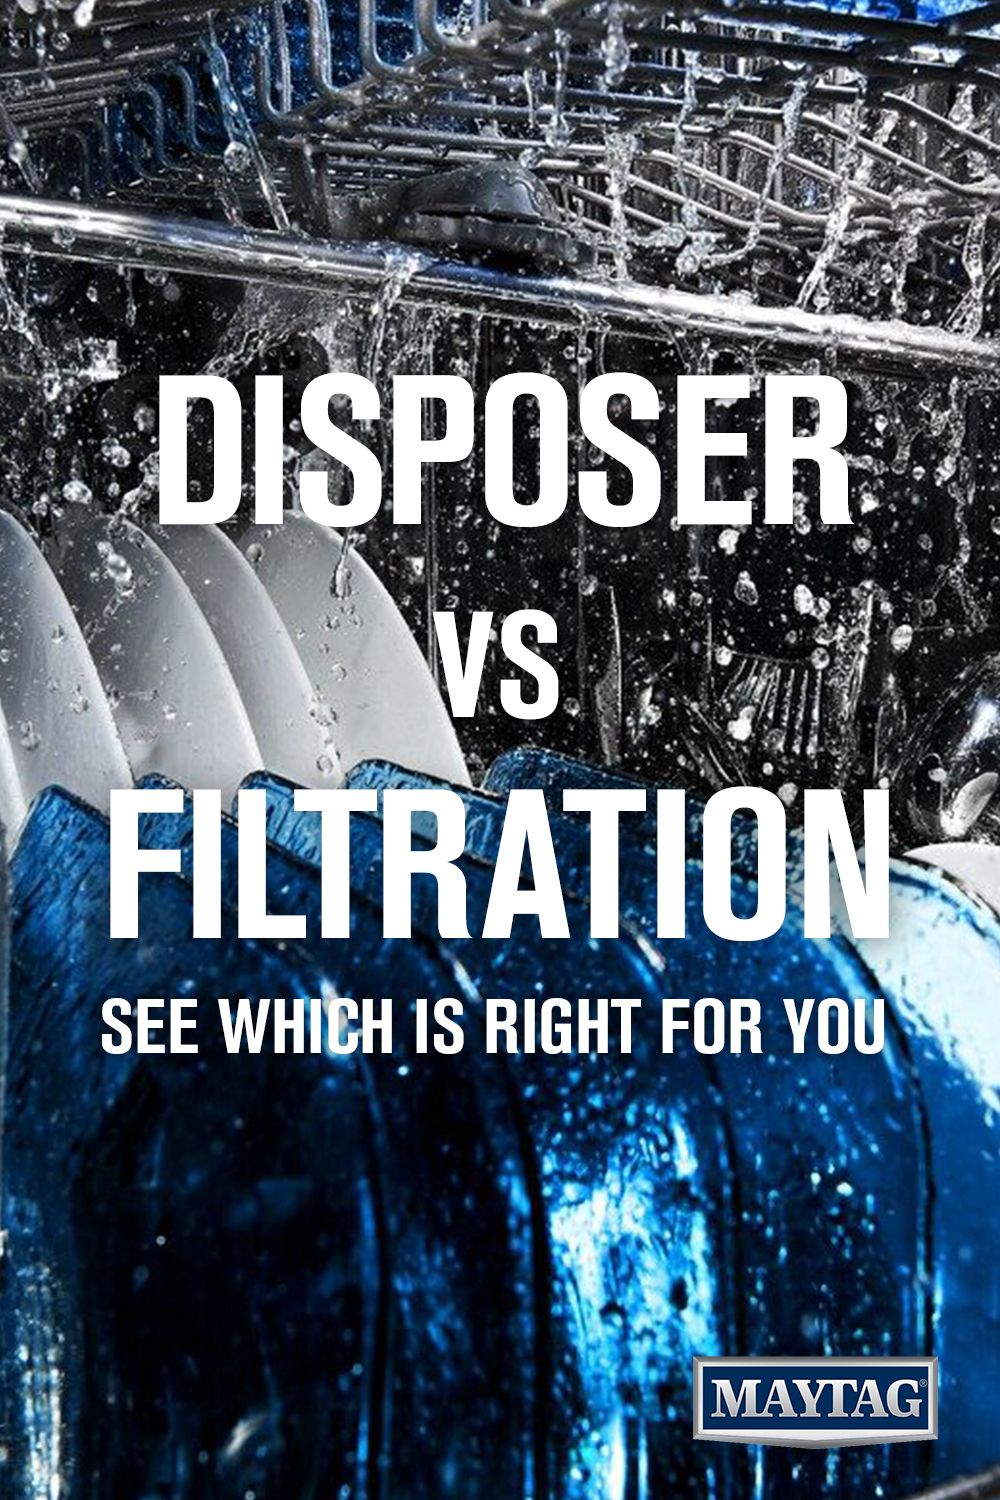 Dishwashers With Hard Food Disposers Vs Filtration Maytag Maytag Maytag Dishwasher Dishwasher